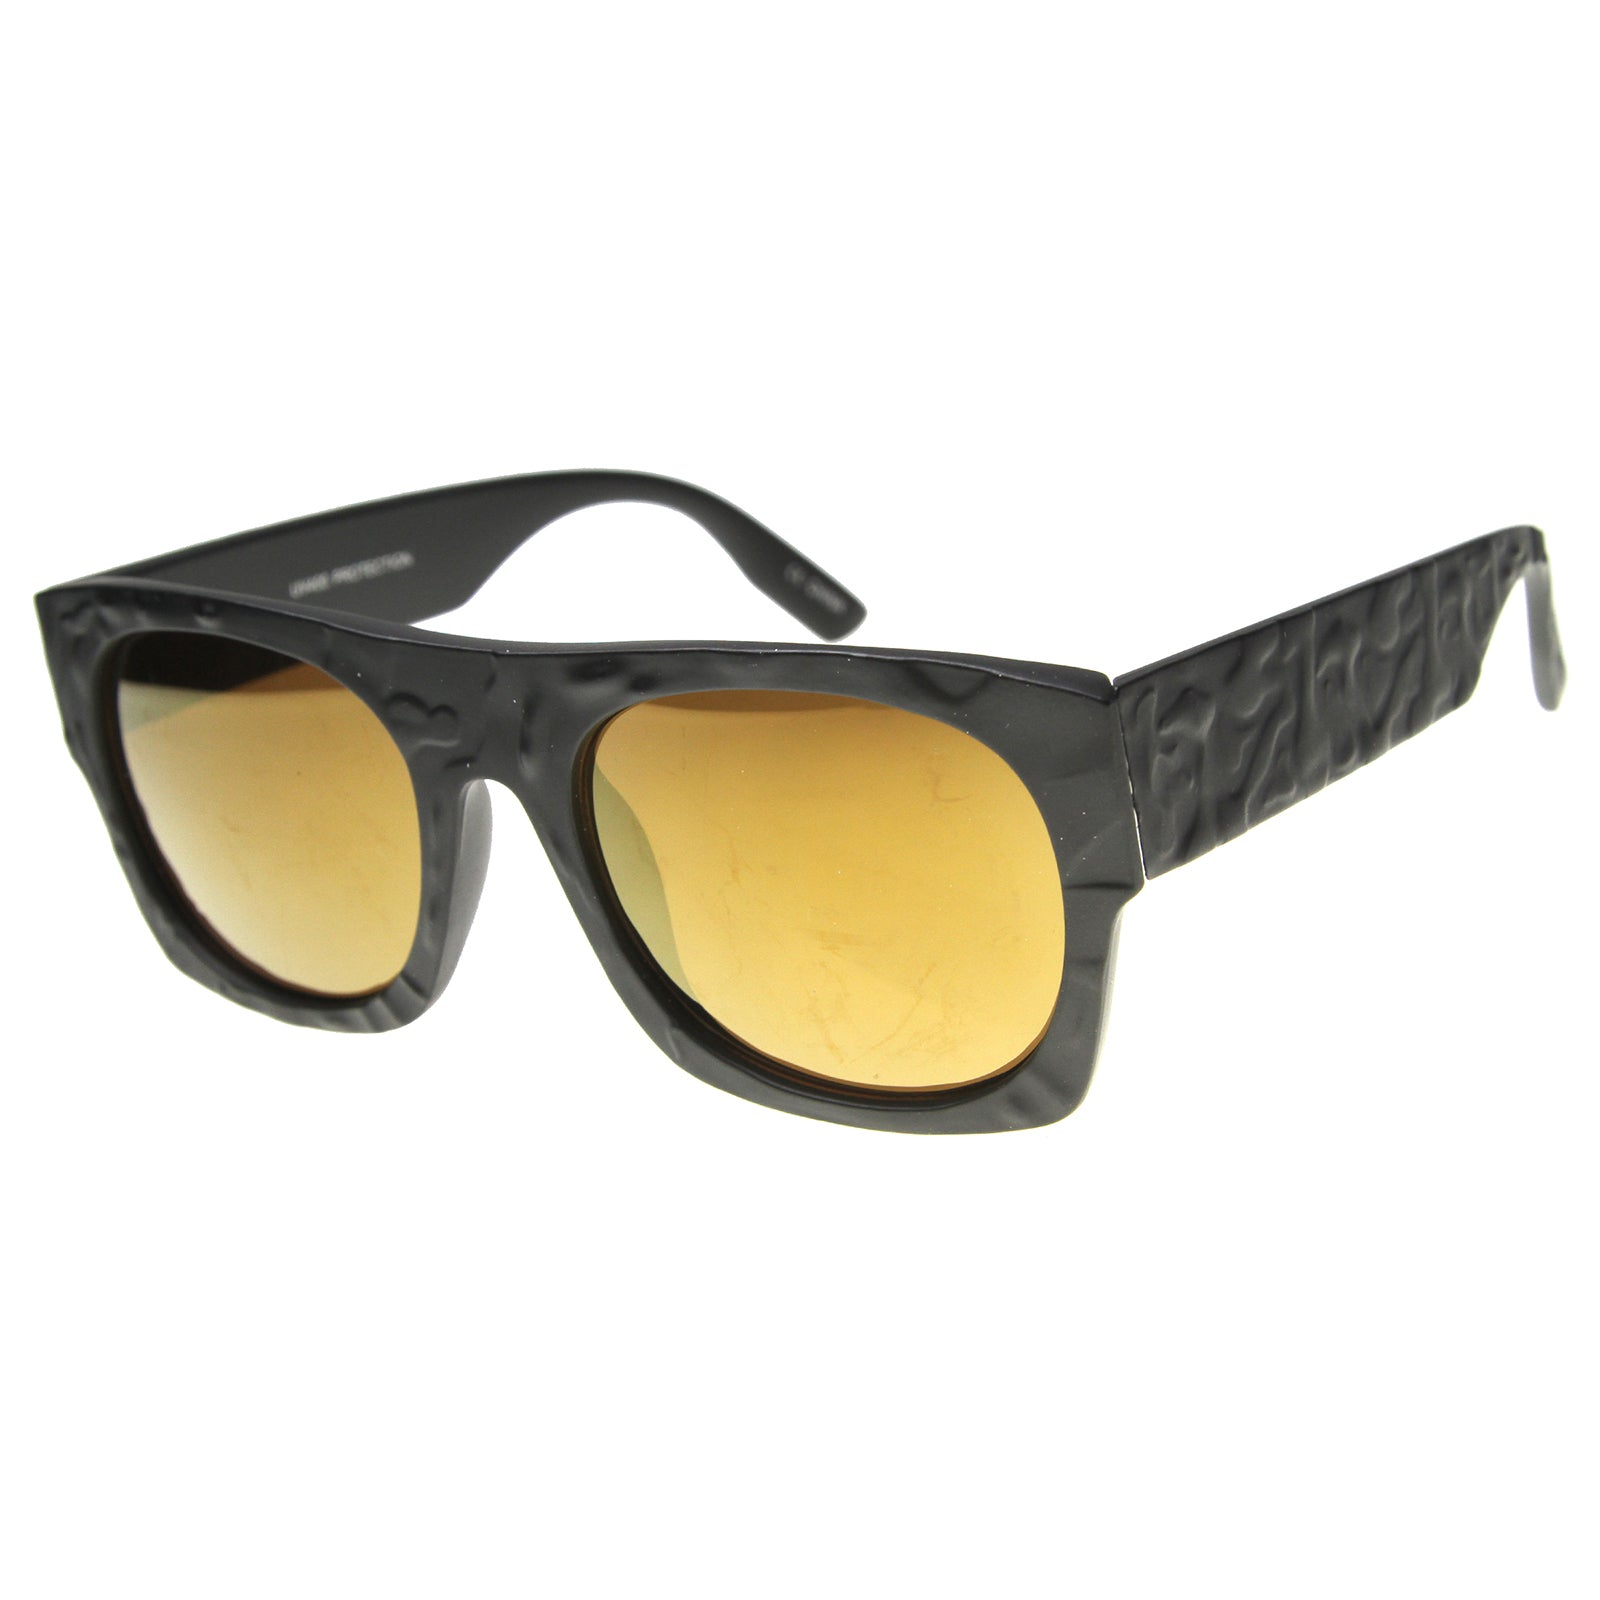 Unisex Rectangular Sunglasses With UV400 Protected Mirrored Lens - sunglass.la - 6